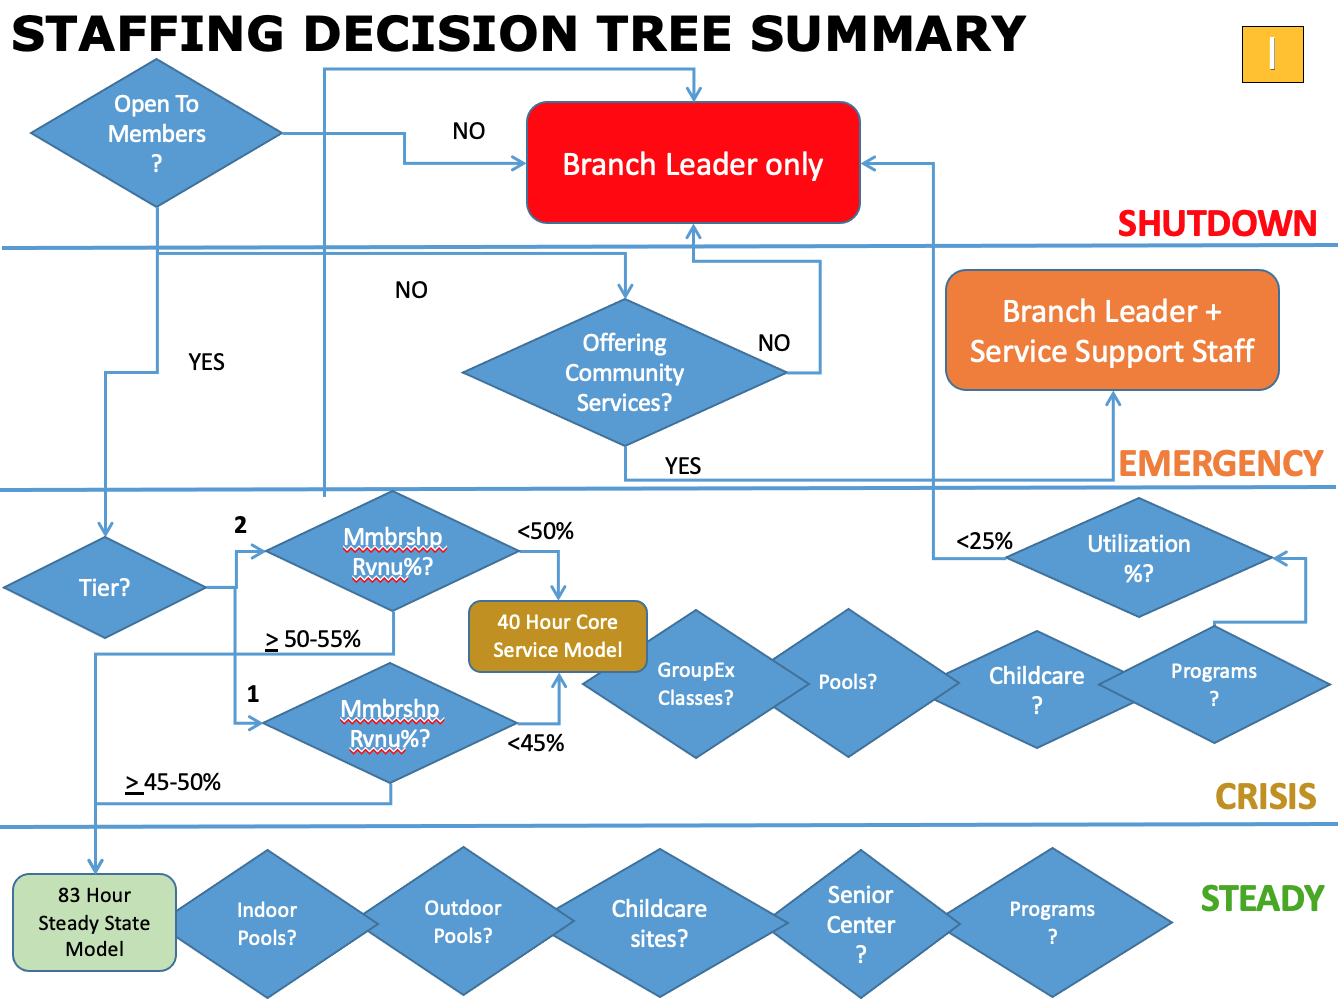 Staffing Decision Tree Summary